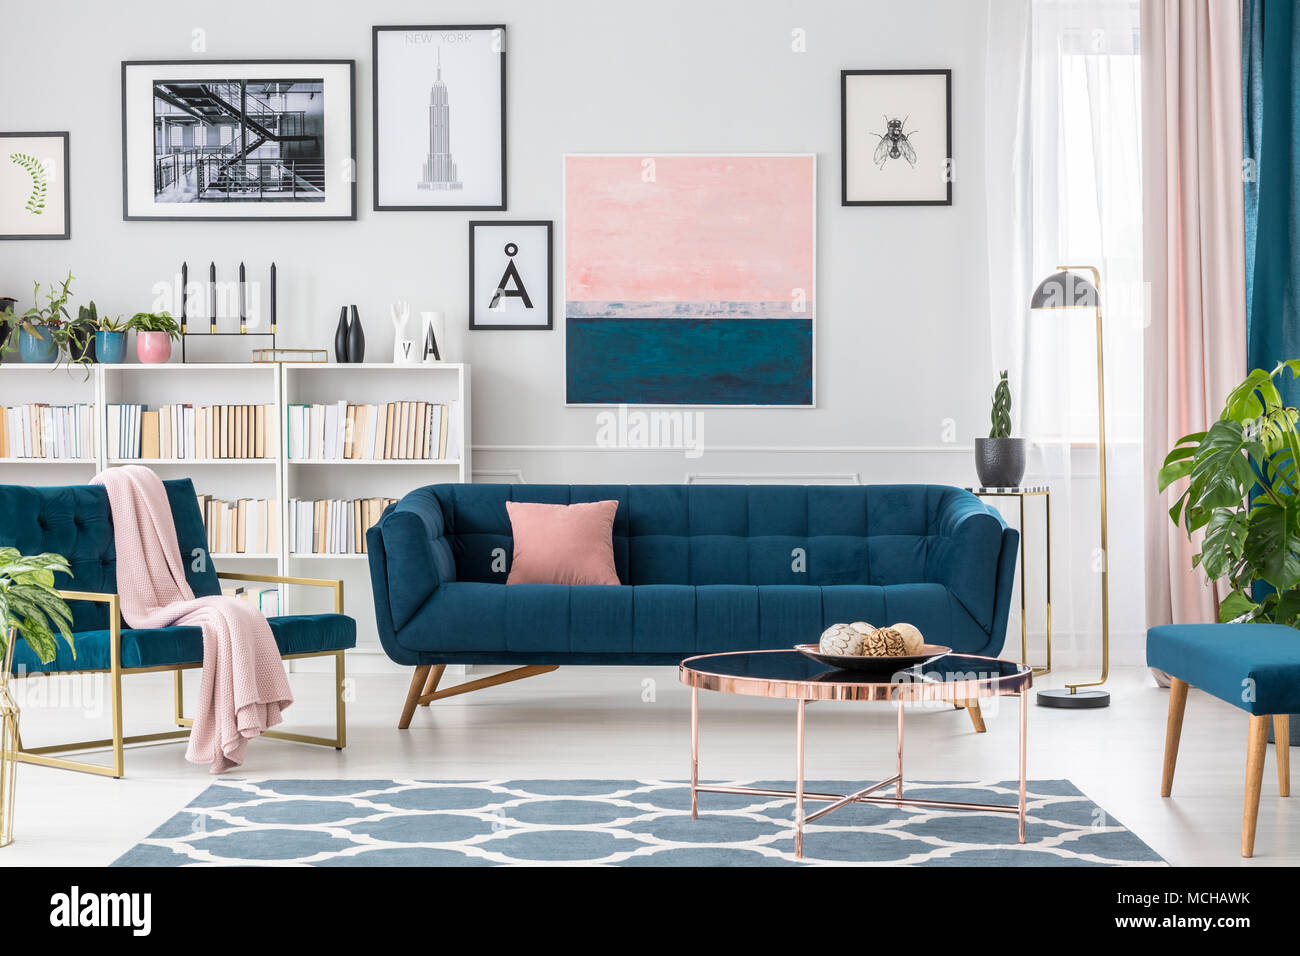 Modern Living Room Interior With Blue Sofa, Rug, Art Collection And Pink  Details